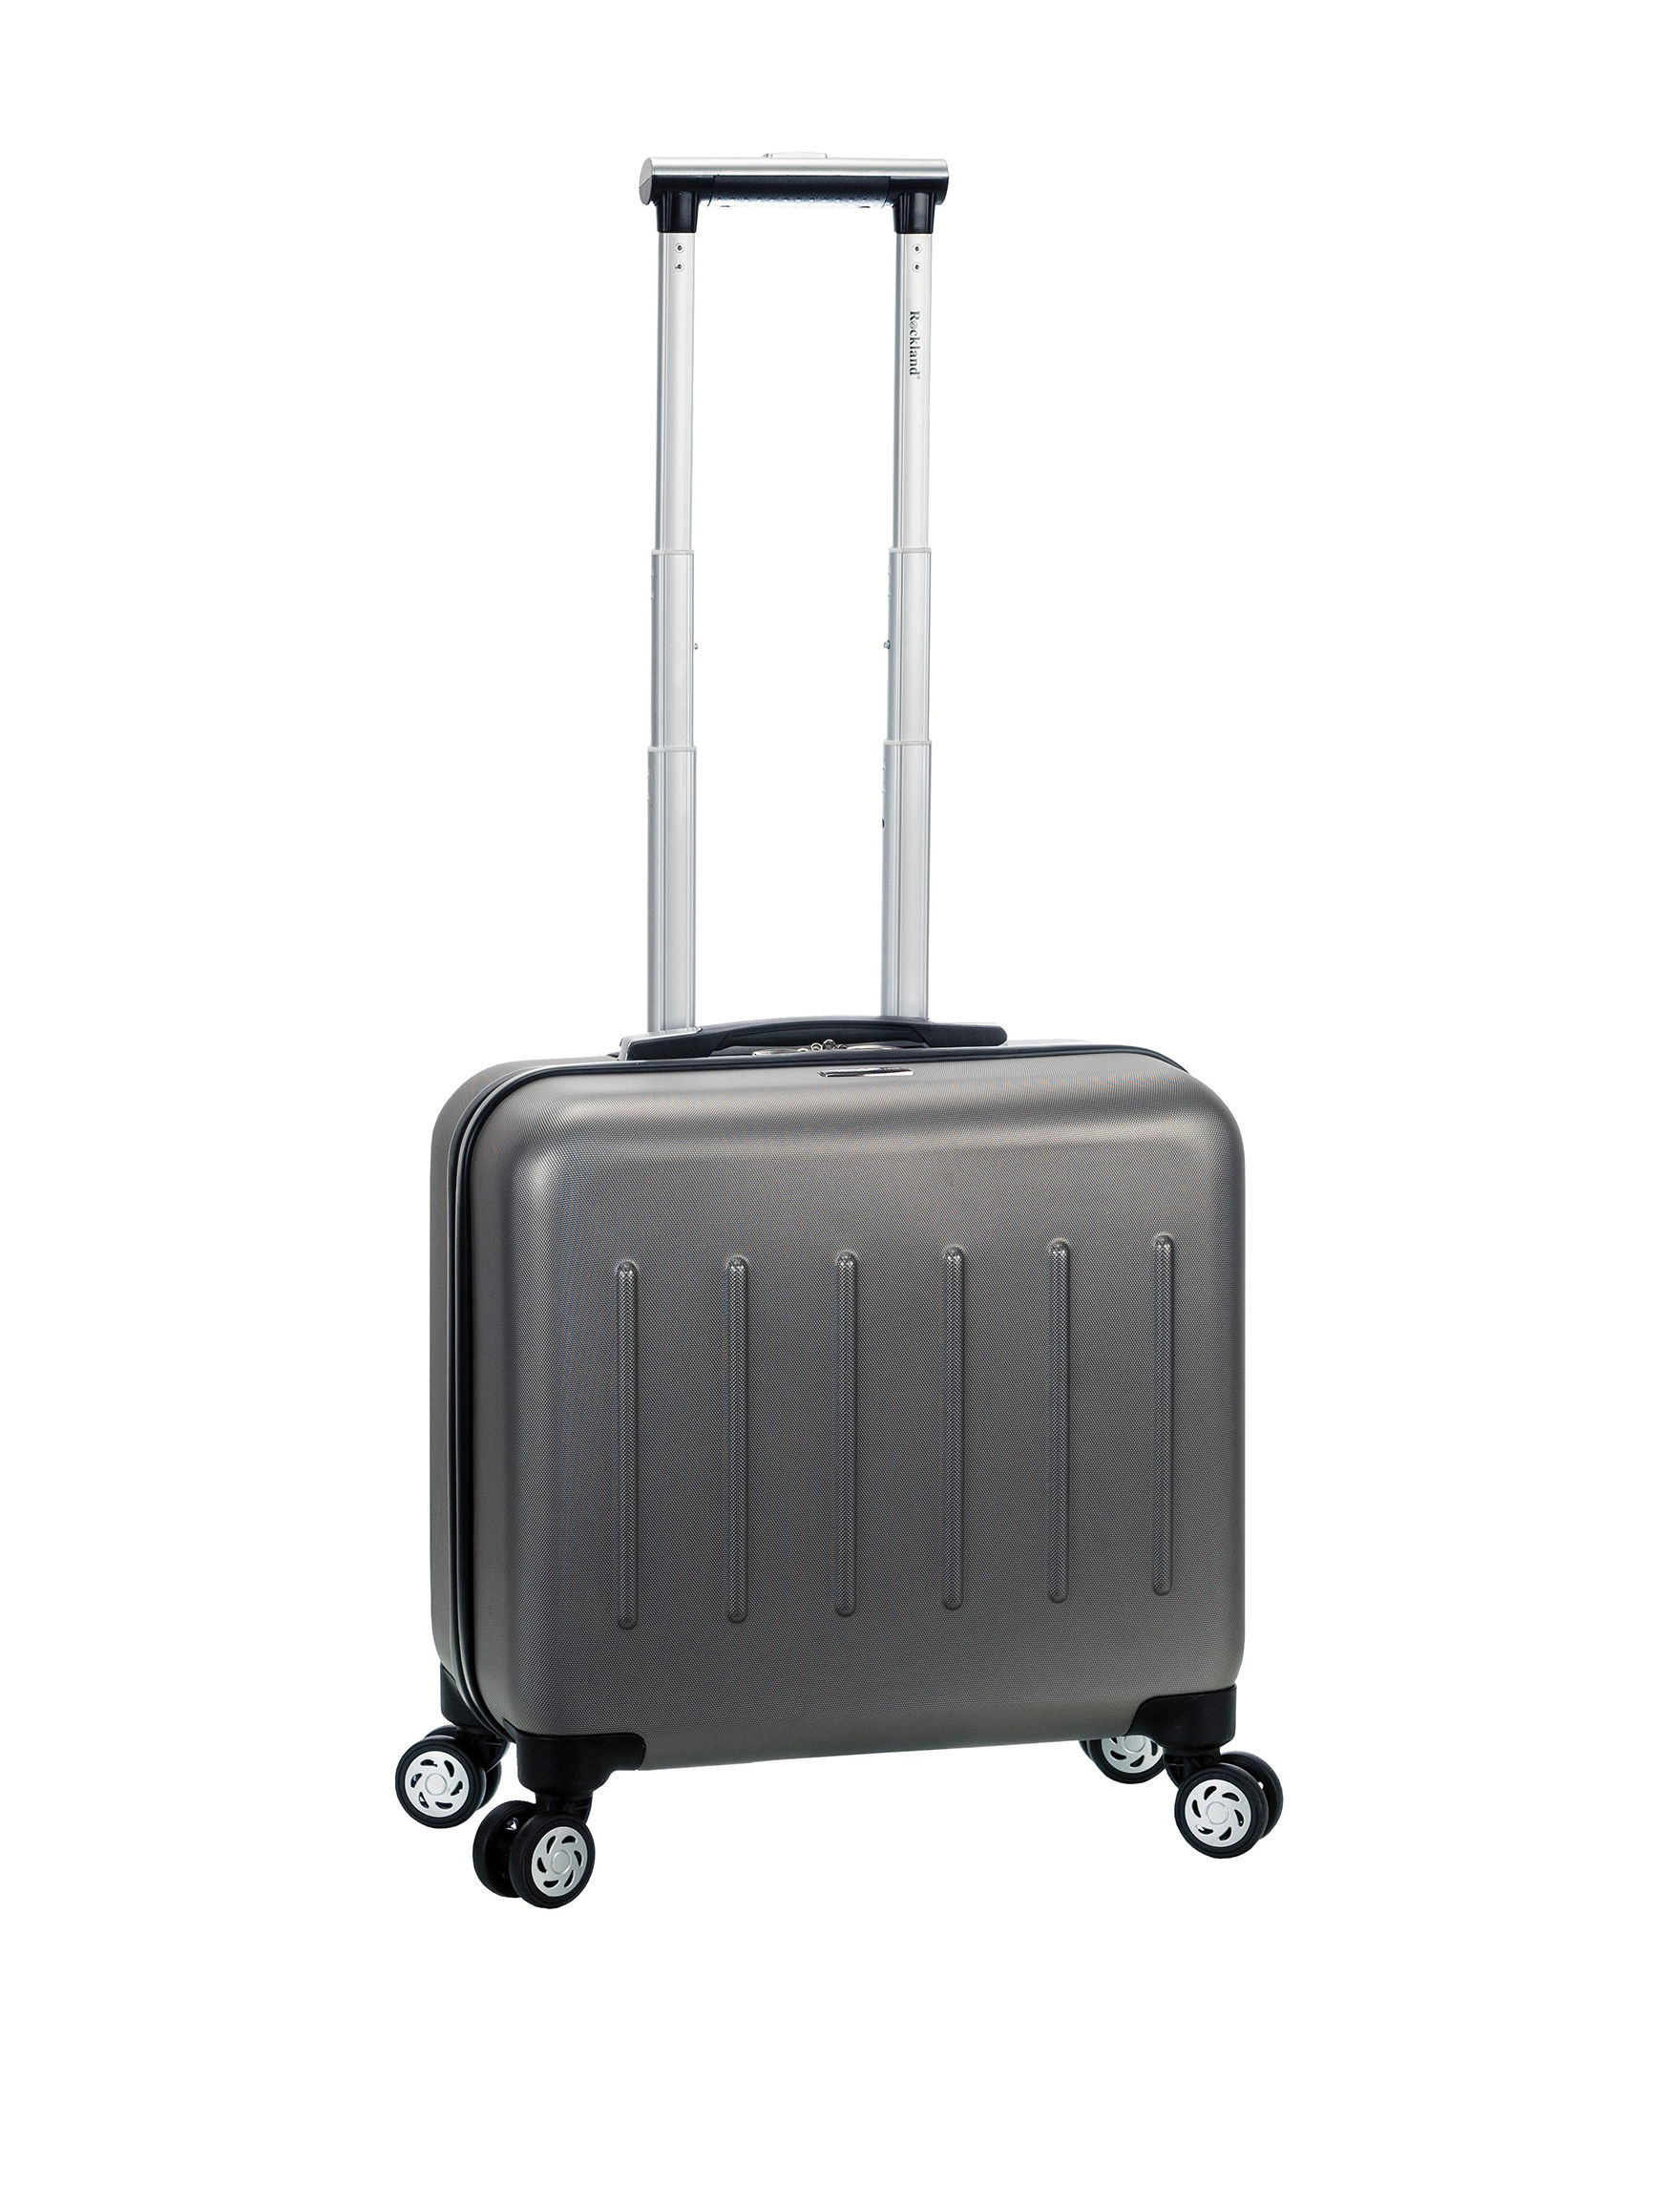 Rockland Silver Laptop & Messenger Bags Upright Spinners